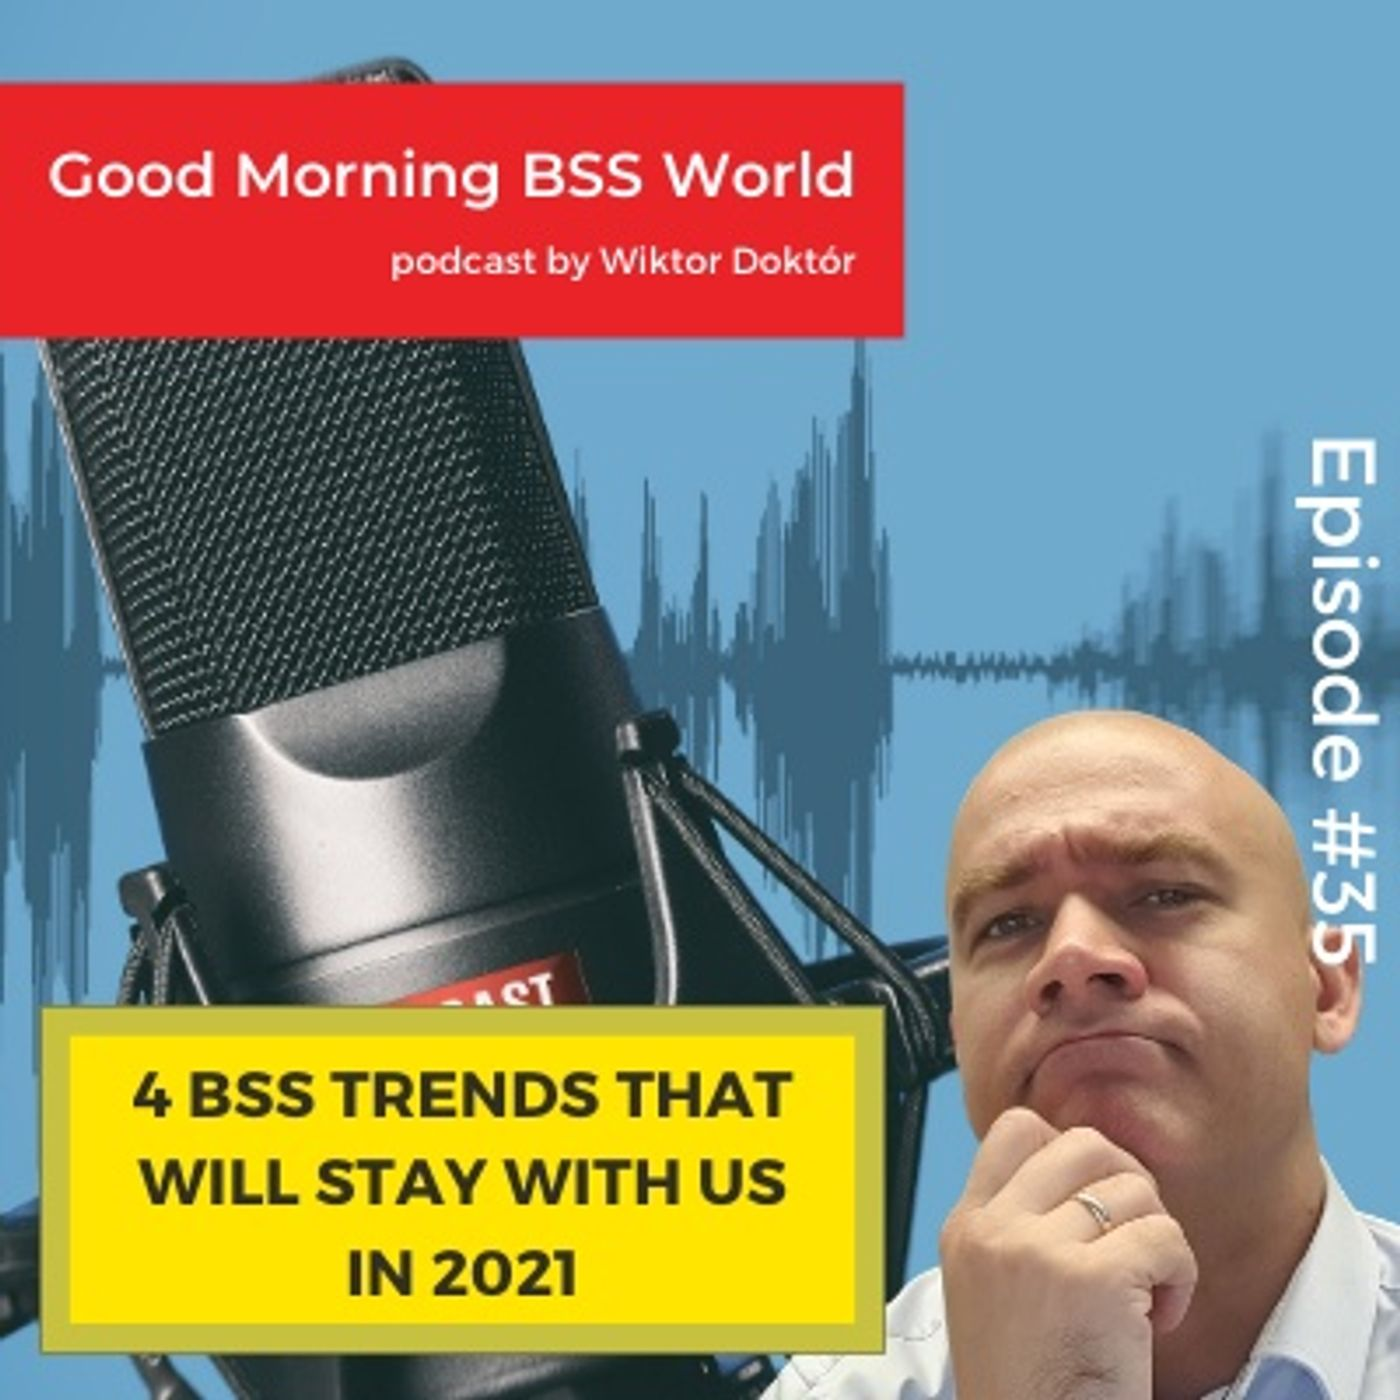 #35 Four BSS trends that will stay with us in 2021